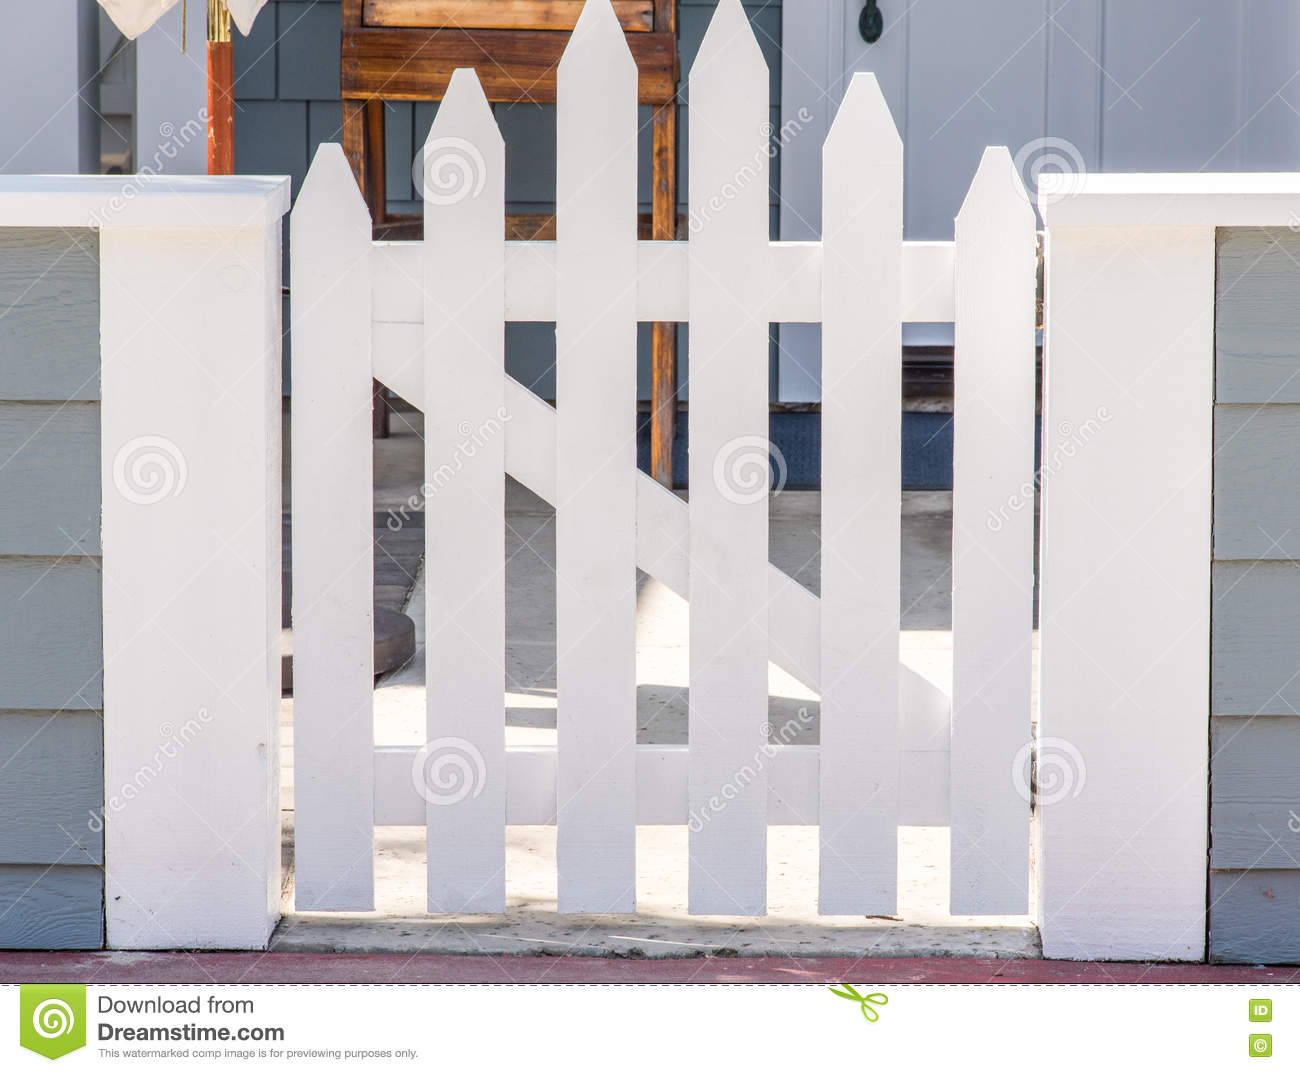 Picket gate stock image. Image of rural, nice, fence - 74506839